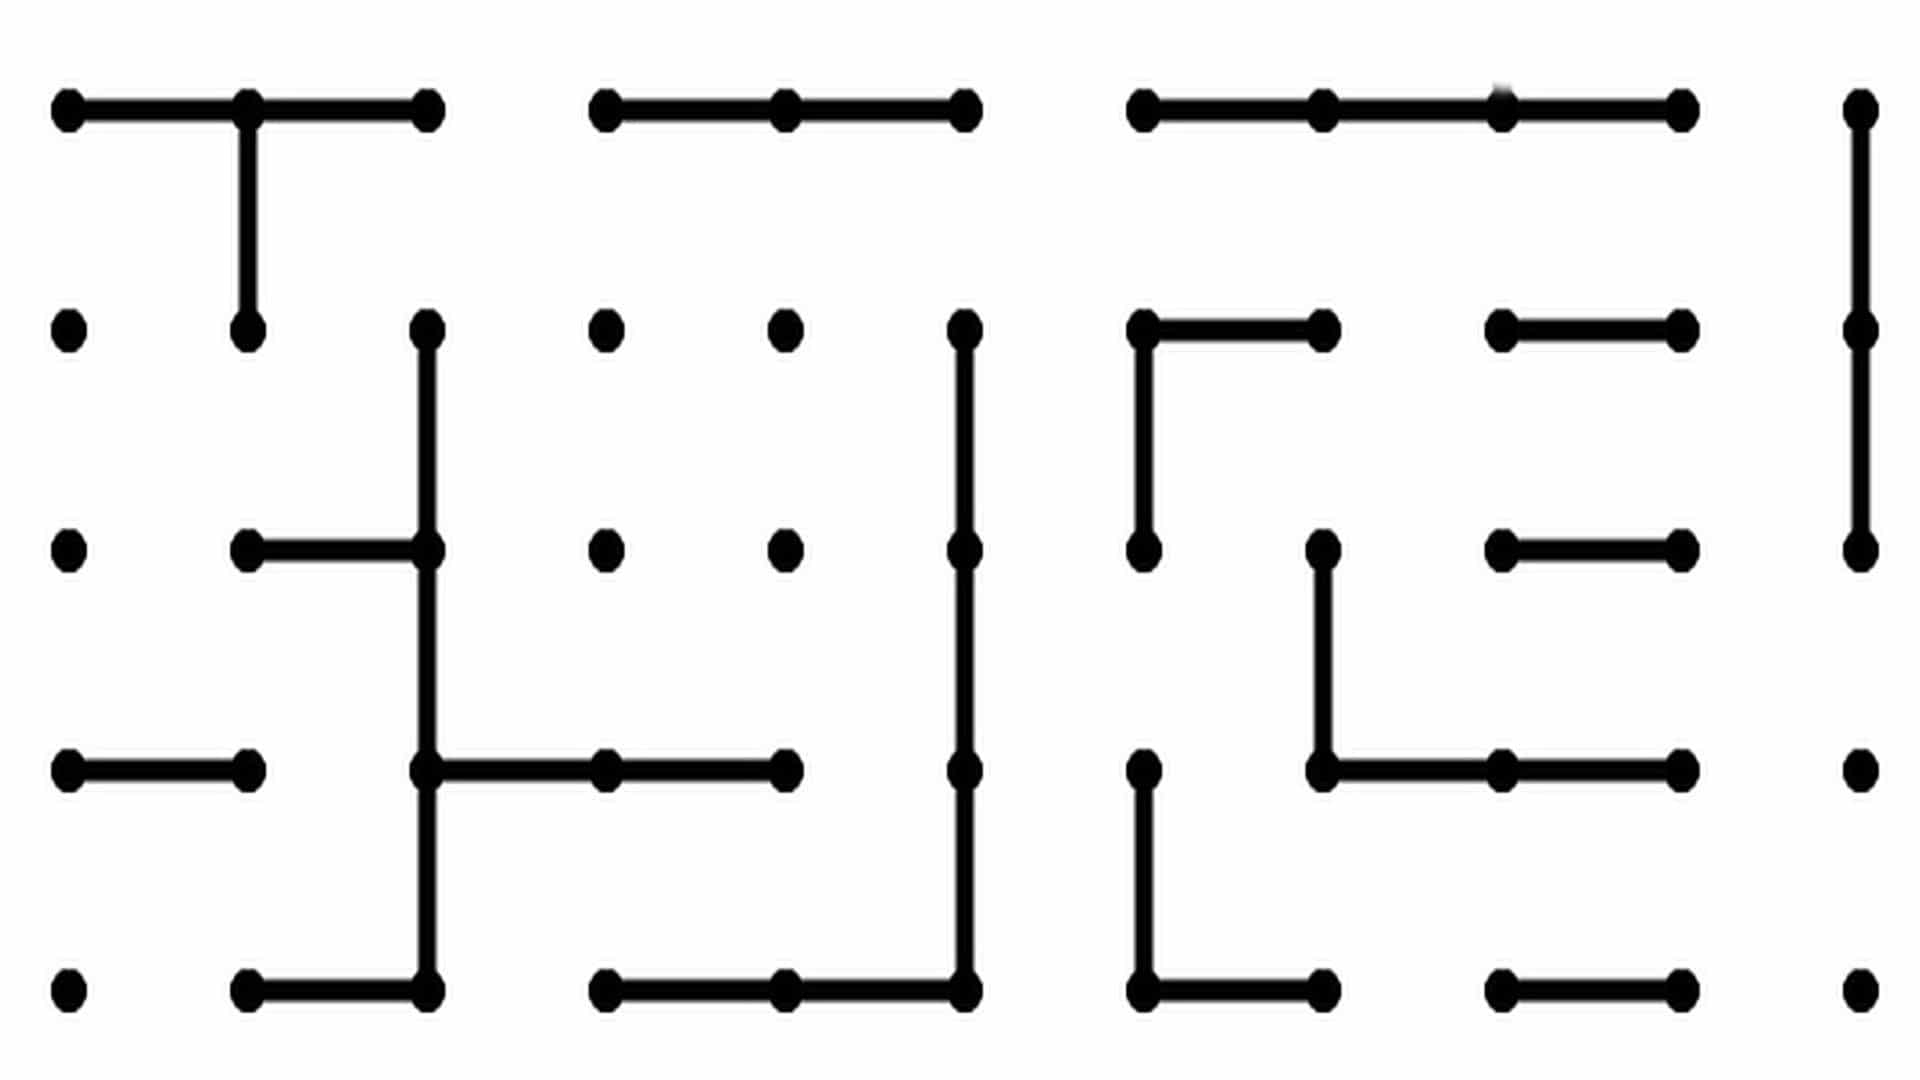 How to play Dots and Boxes?